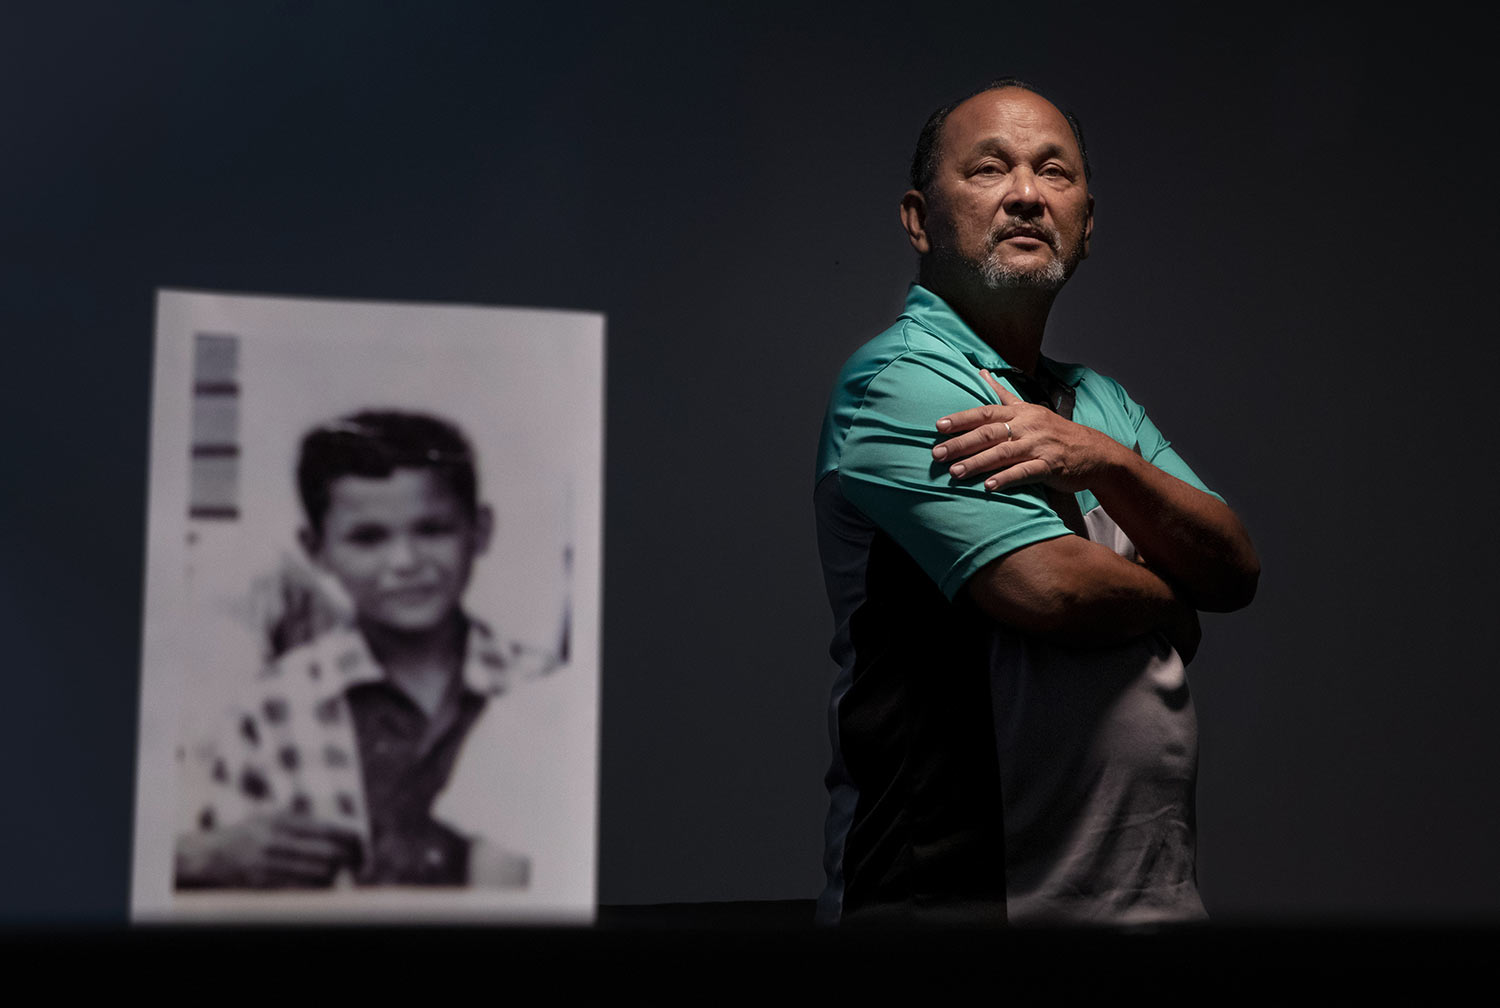 Ramon De Plata, 65, stands behind a photo of himself when he was about 10 years old. (AP Photo/David Goldman)